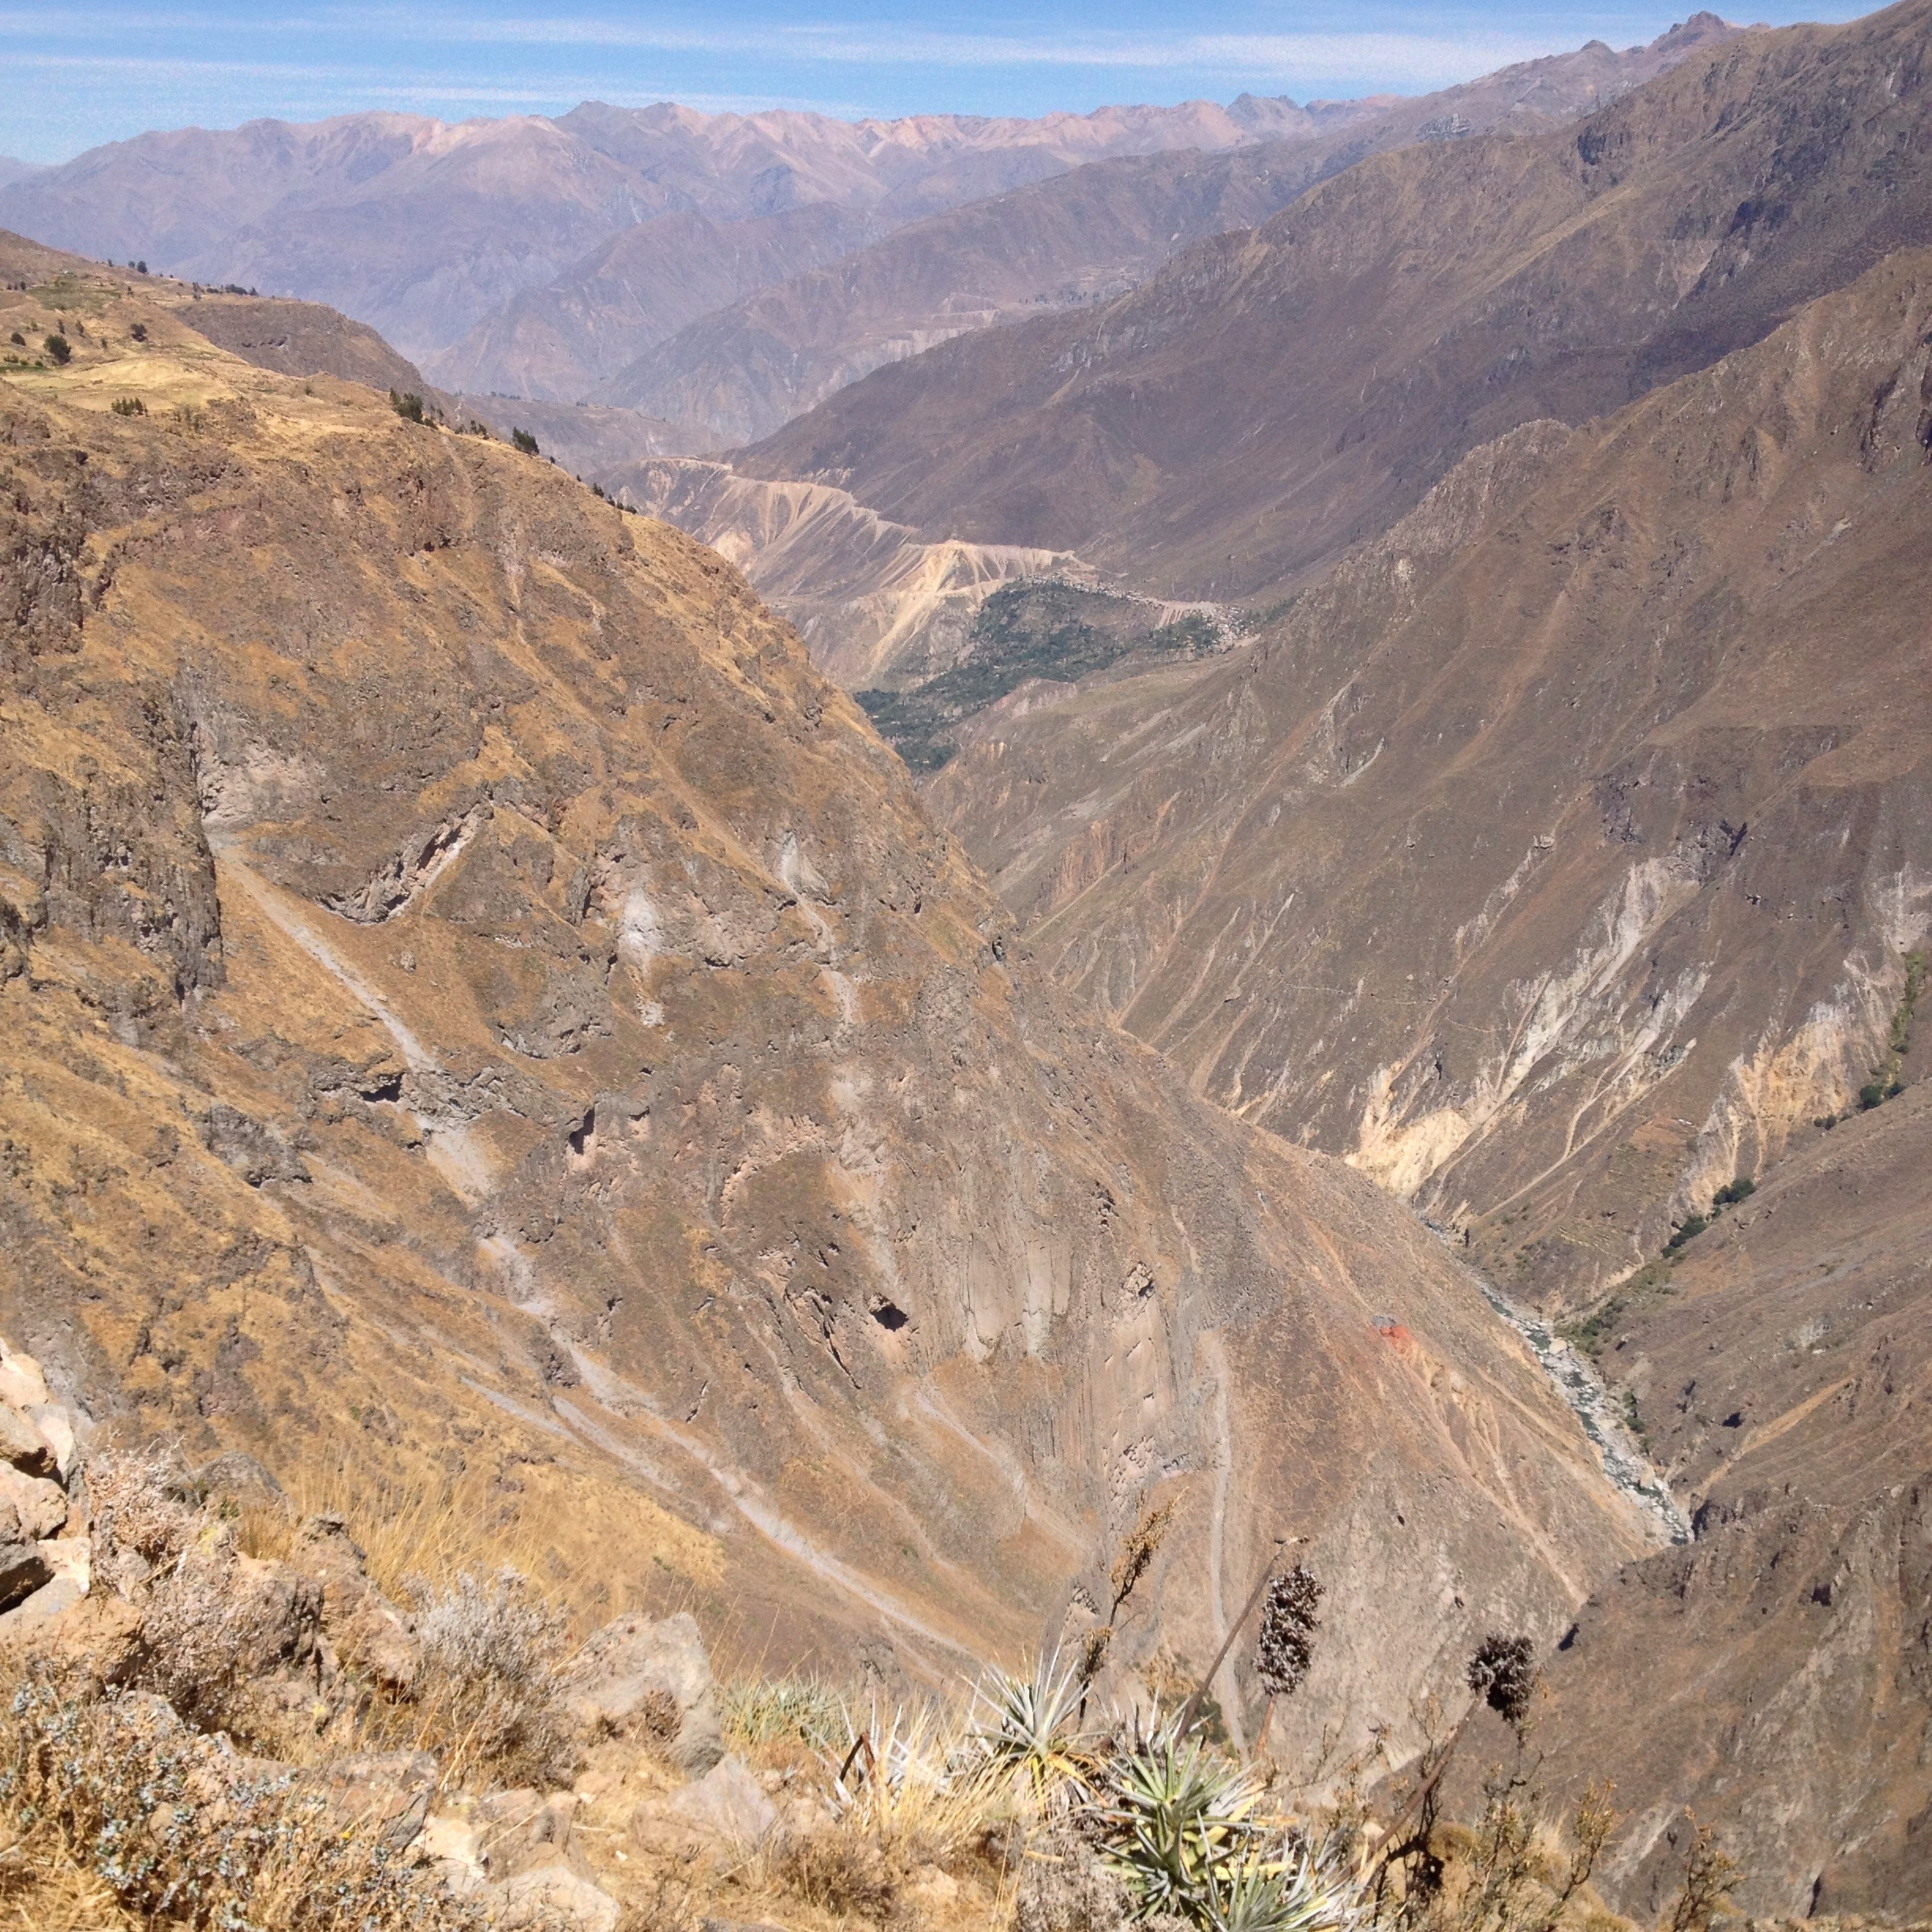 Looking up the Colca Canyon- spot the river at the bottom